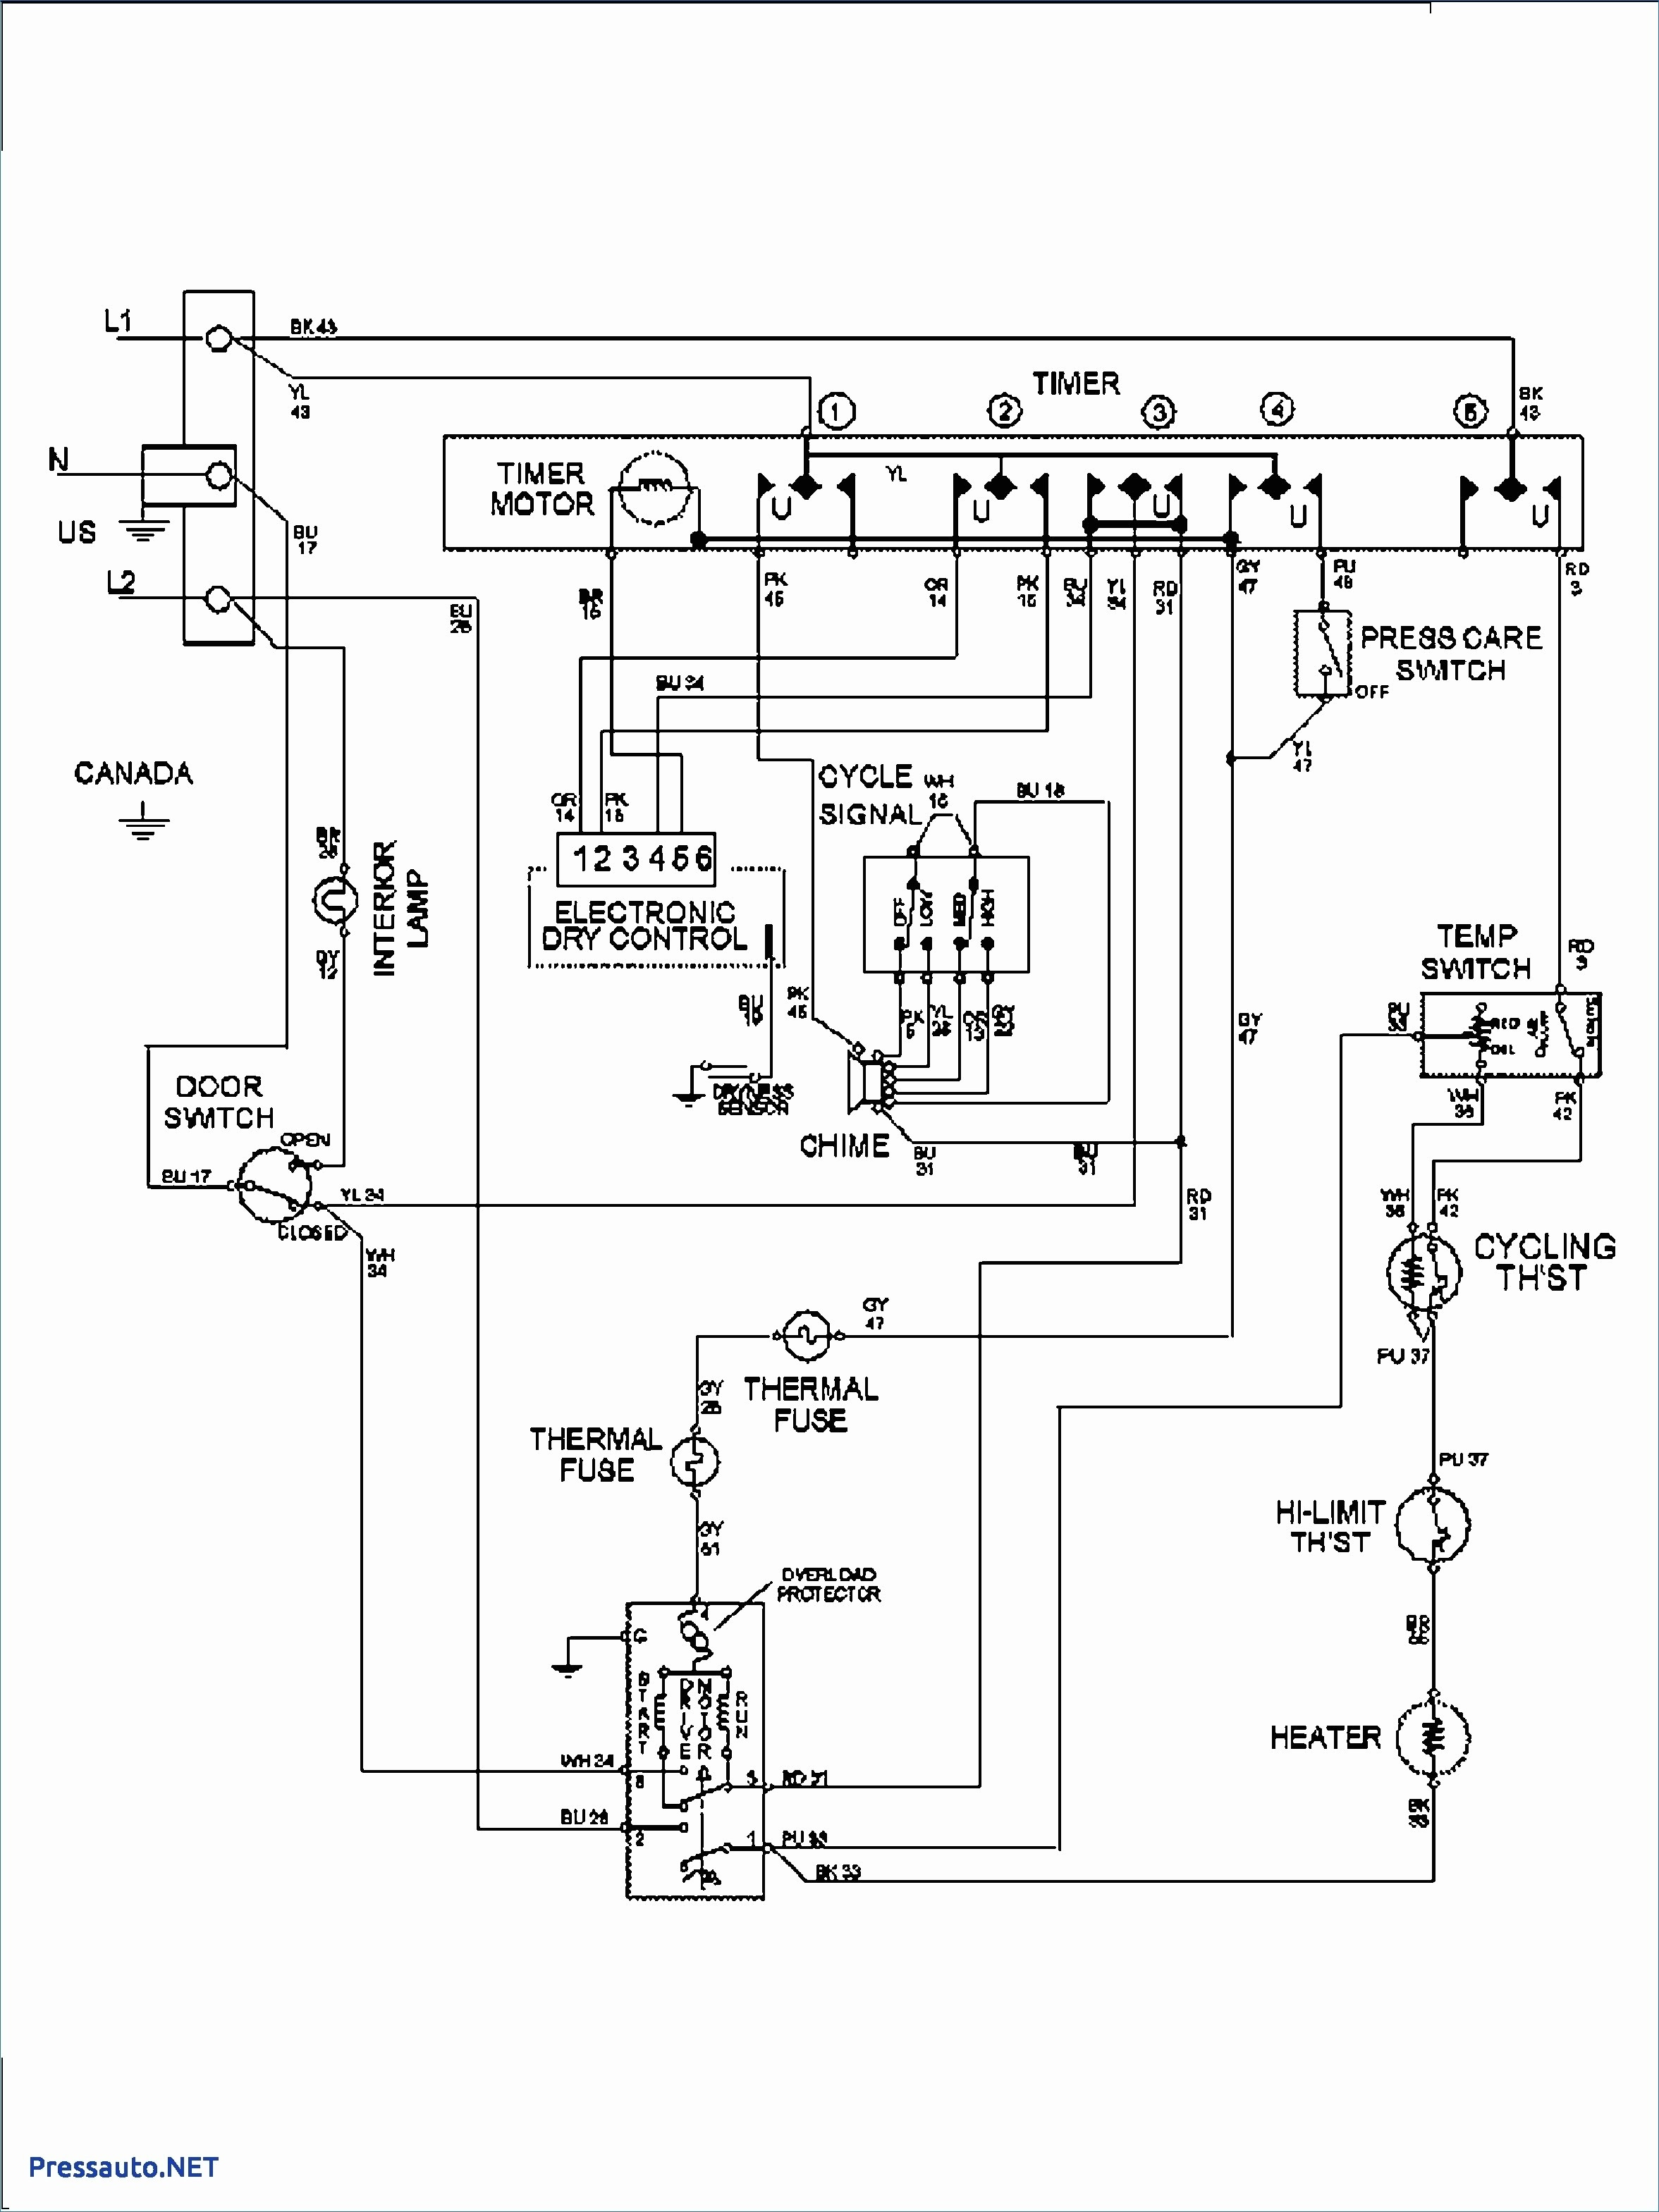 heating element wiring diagram wiring diagram for whirlpool dryer heating element | free ... #10